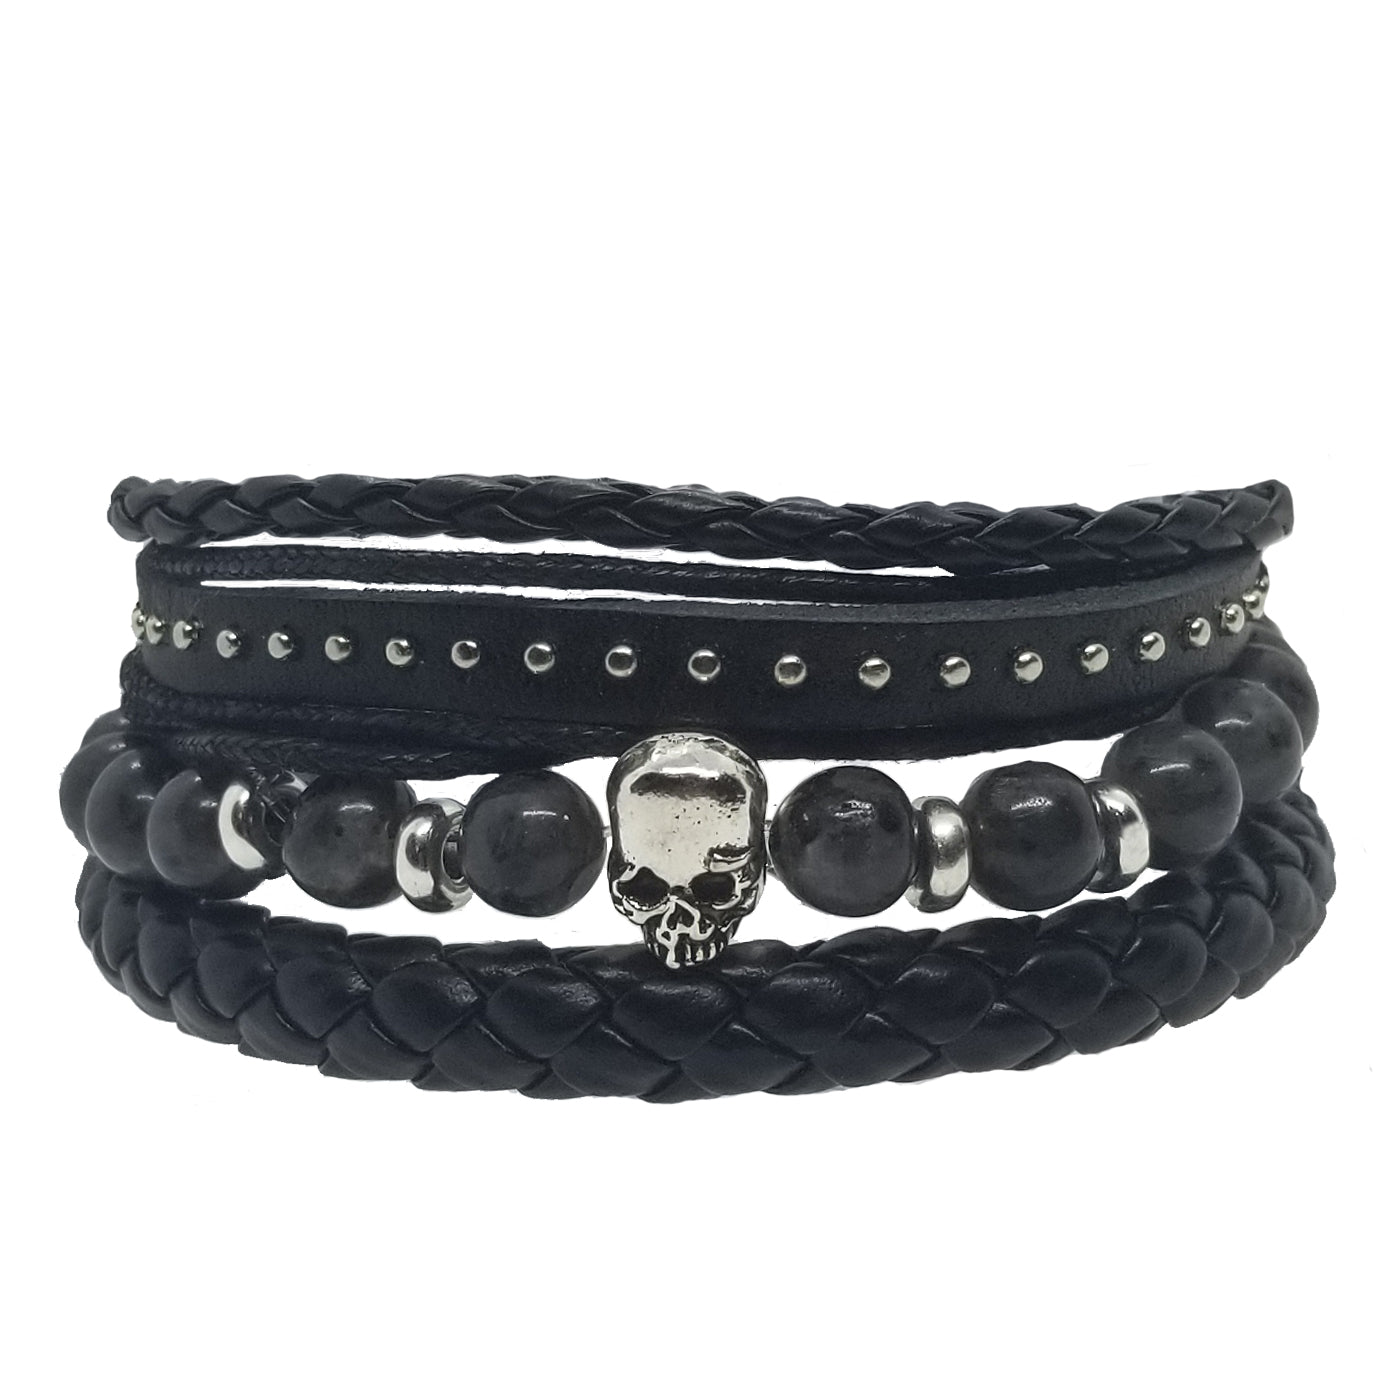 Skull Beads Leather Bracelet Set - Gray - Silverado Outpost